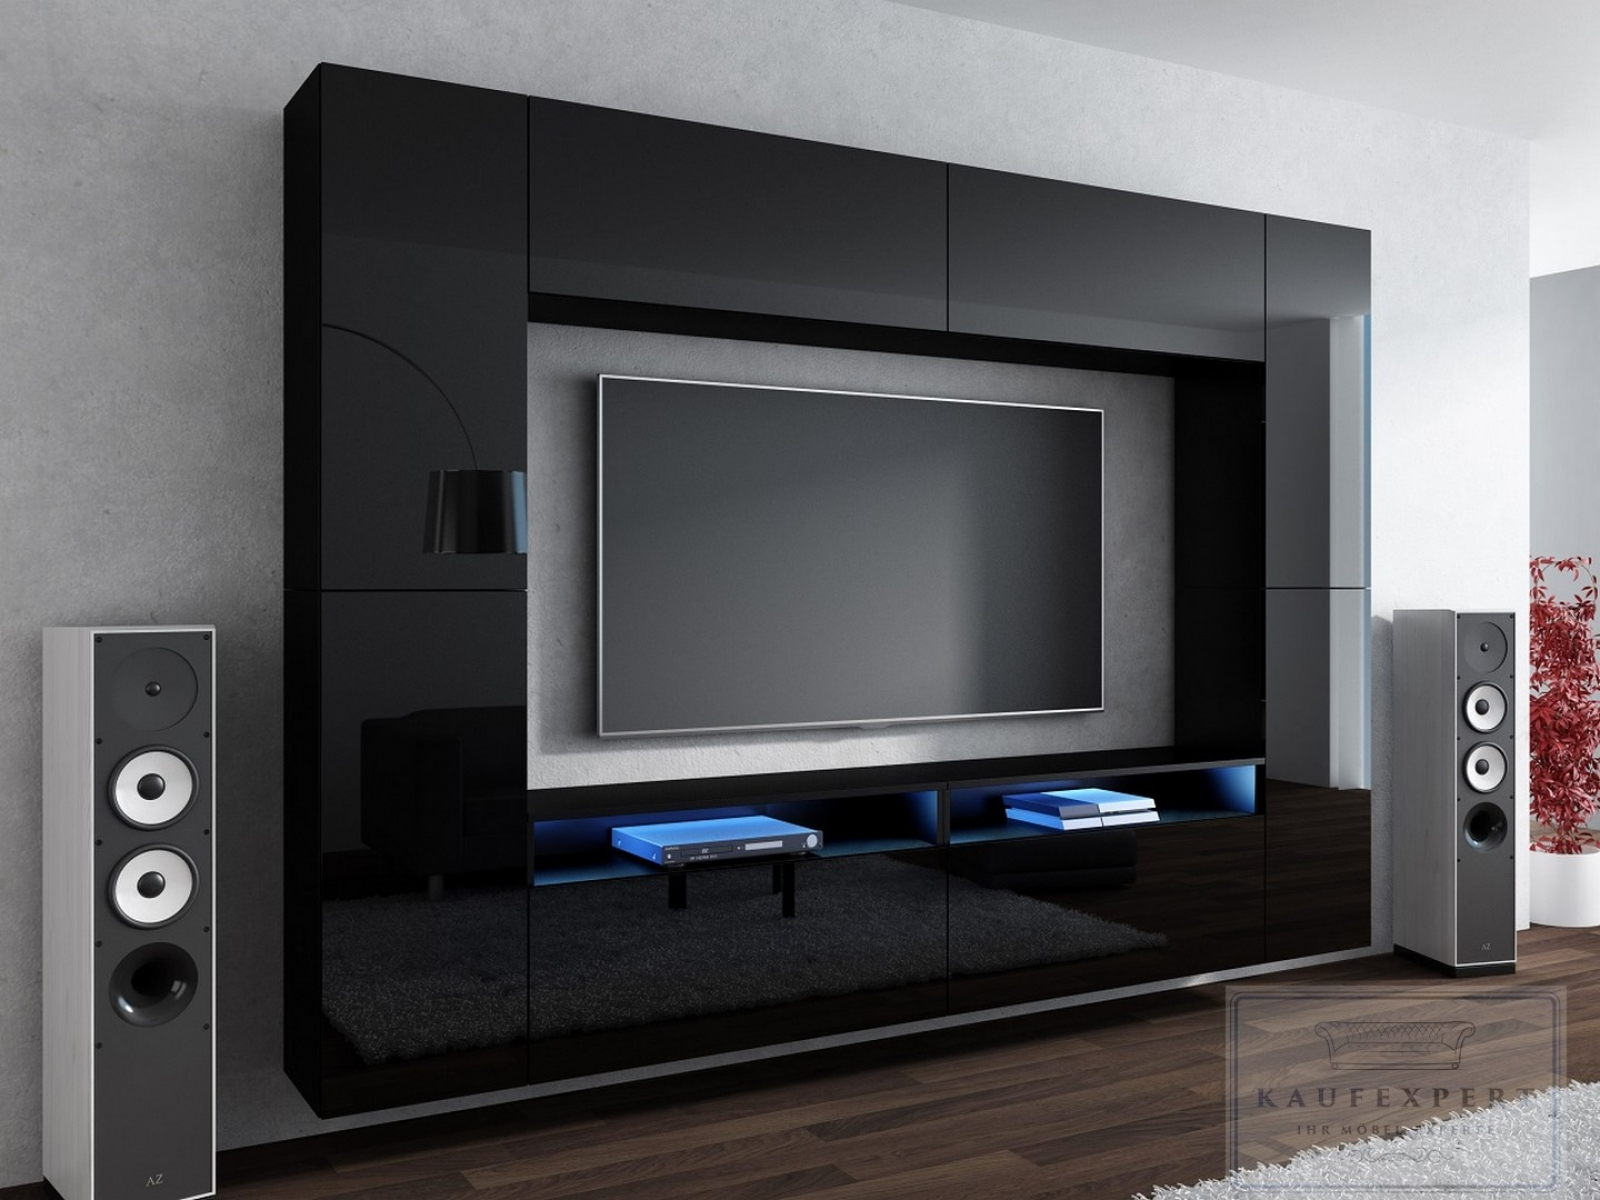 kaufexpert wohnwand cinema schwarz hochglanz mediawand. Black Bedroom Furniture Sets. Home Design Ideas